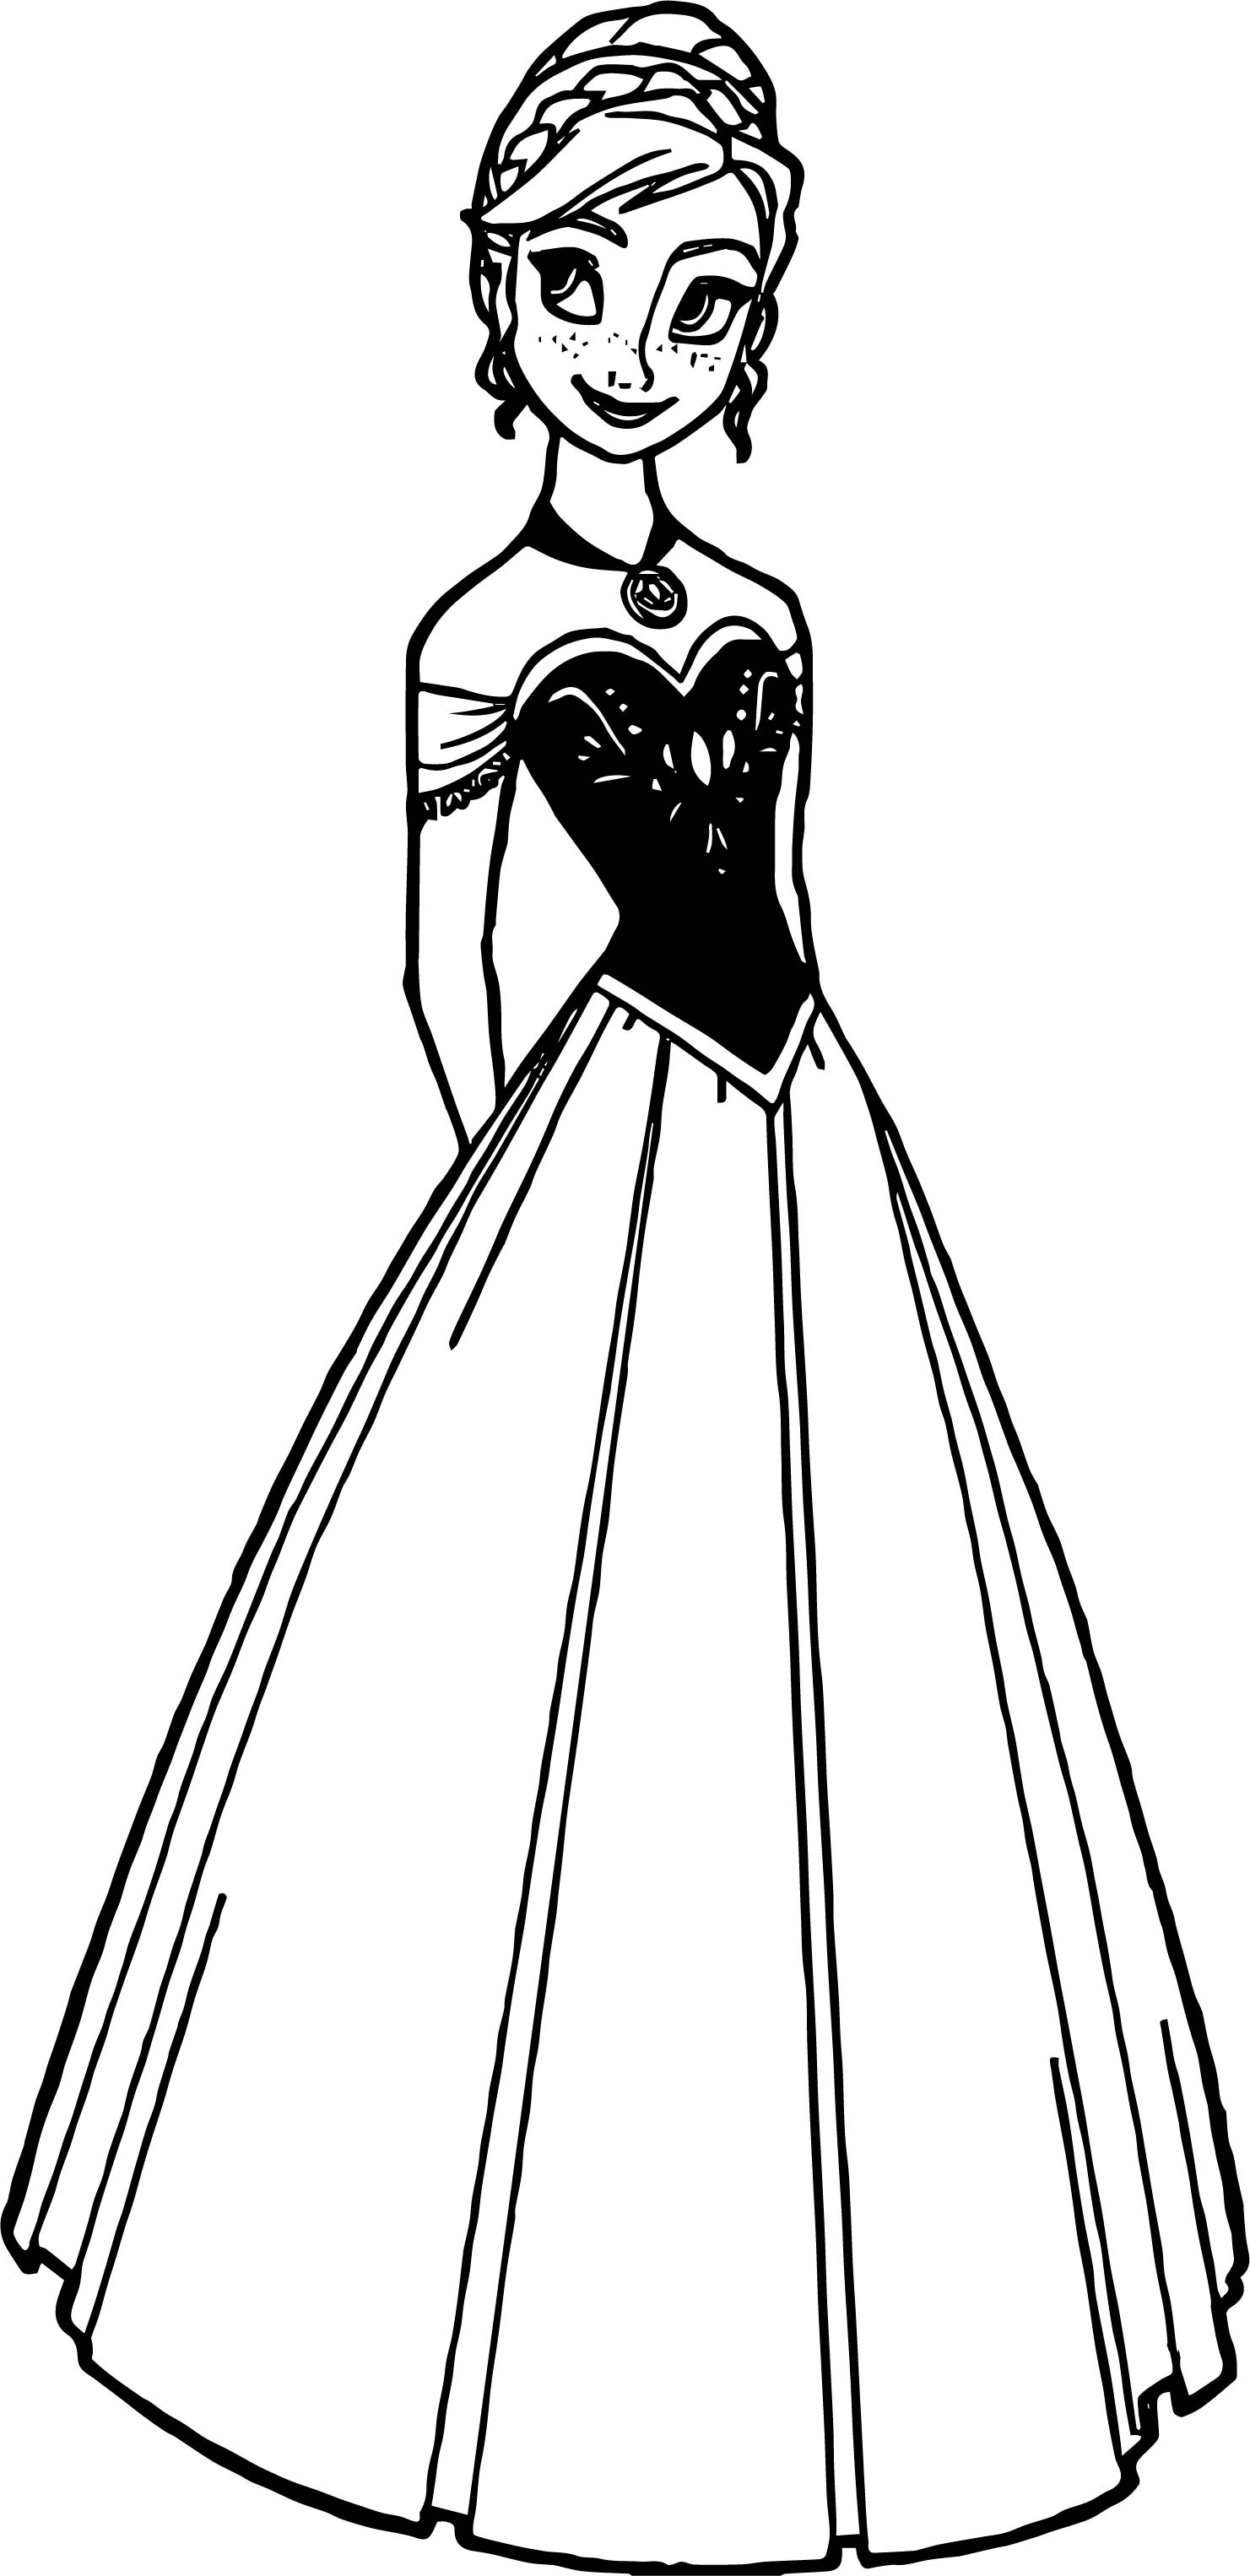 Anna Dress Coloring Page